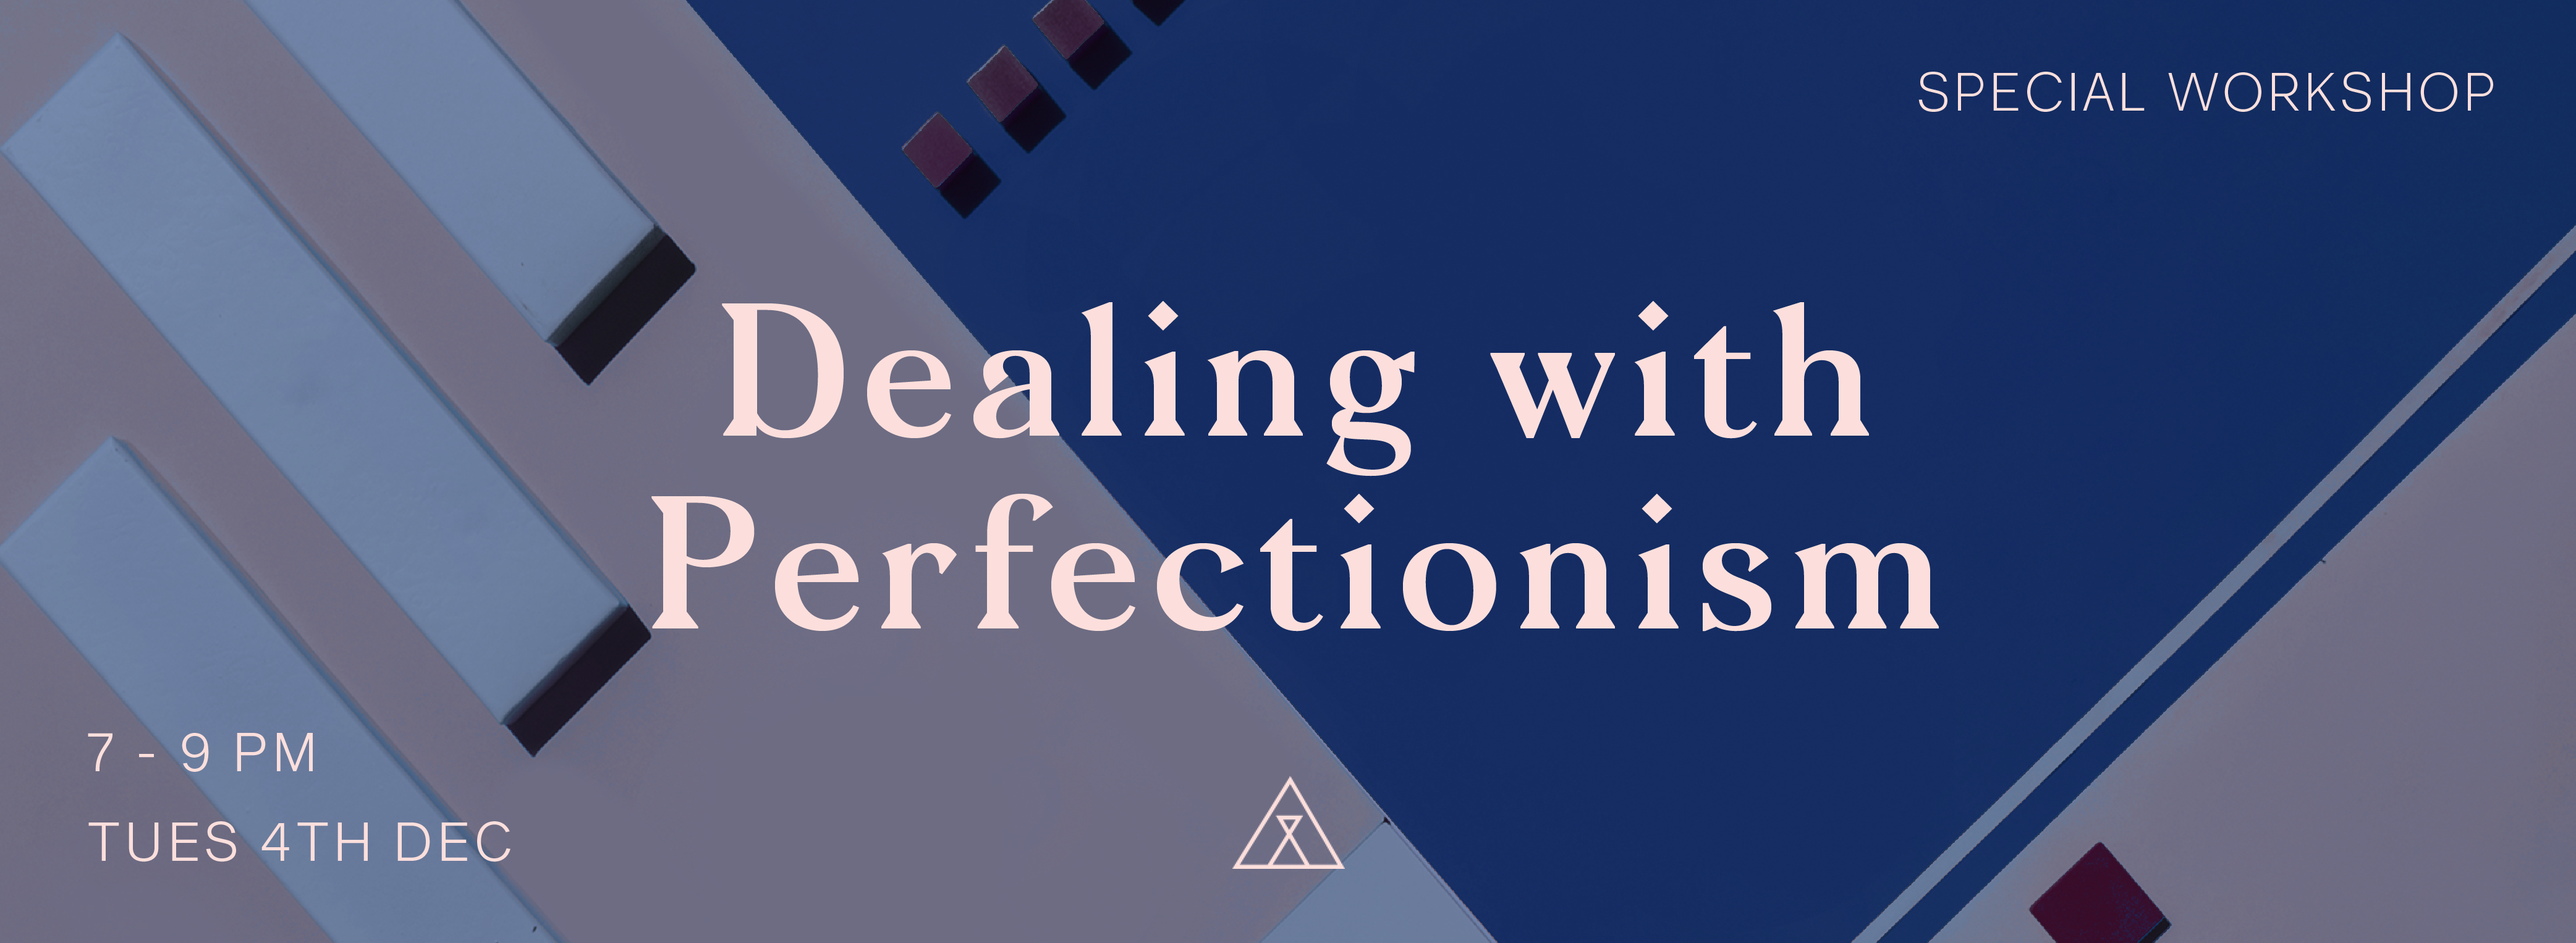 Dealing with Perfectionism_Web Header